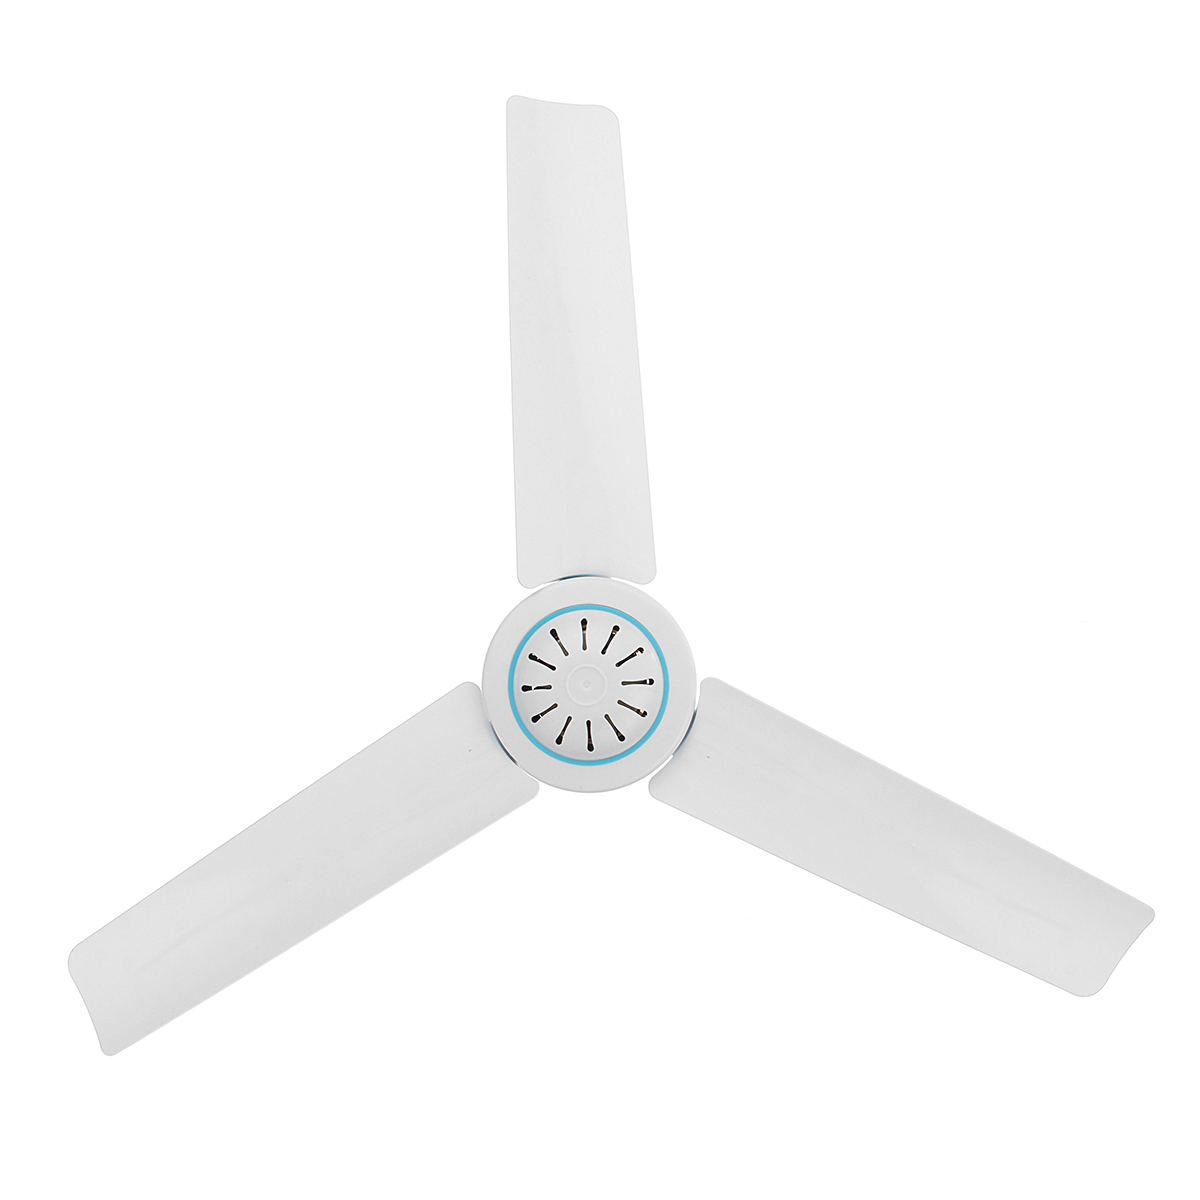 DC 12V 6W 3 Leaves Portable Ceiling Fan Mini Hanging Ceiling Fan Humidifier Cooling